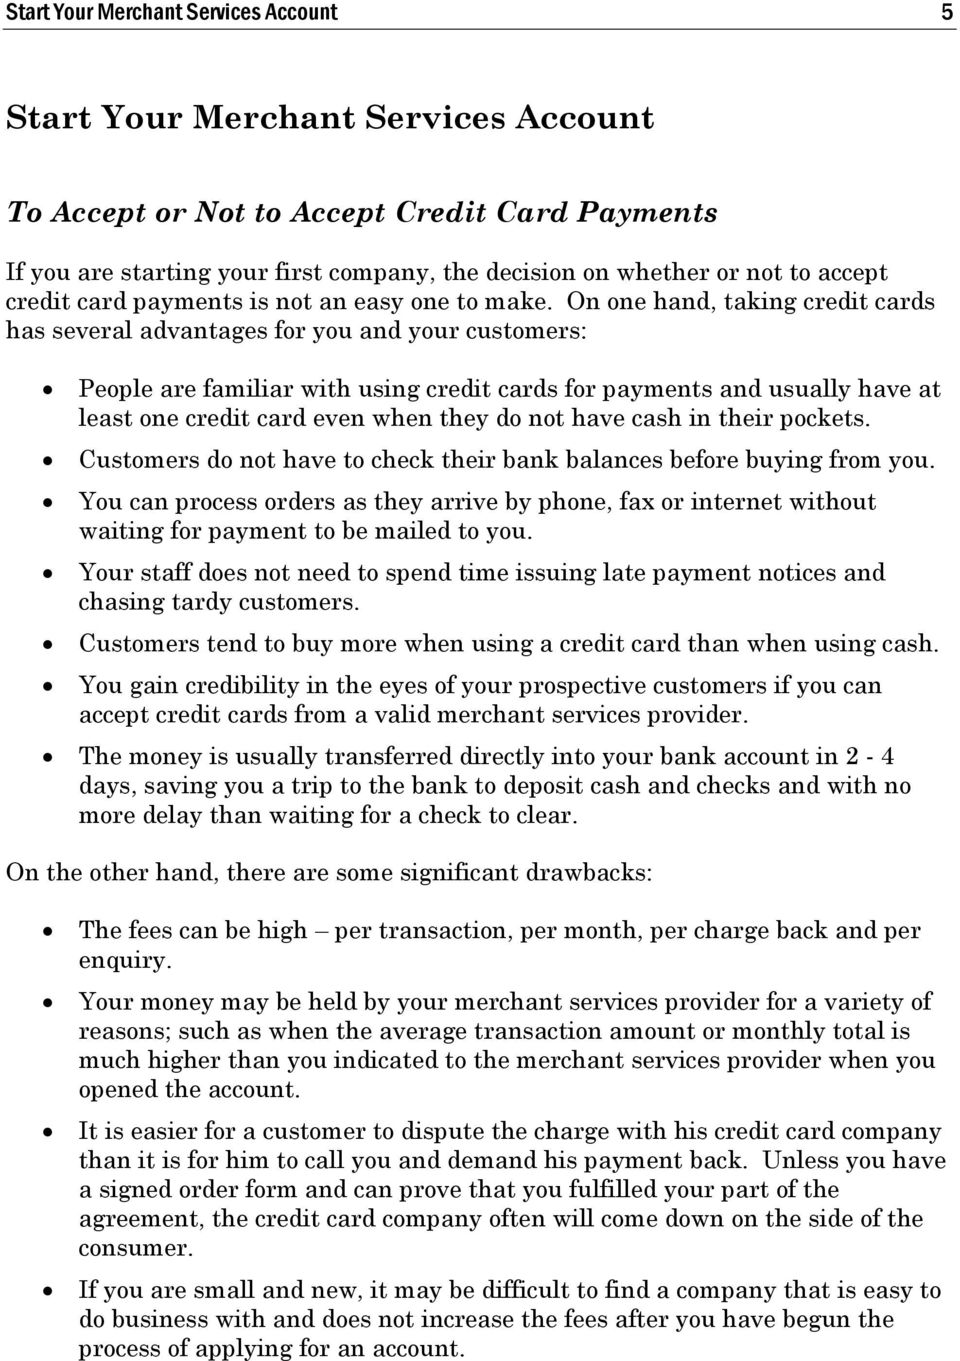 On one hand, taking credit cards has several advantages for you and your customers: People are familiar with using credit cards for payments and usually have at least one credit card even when they